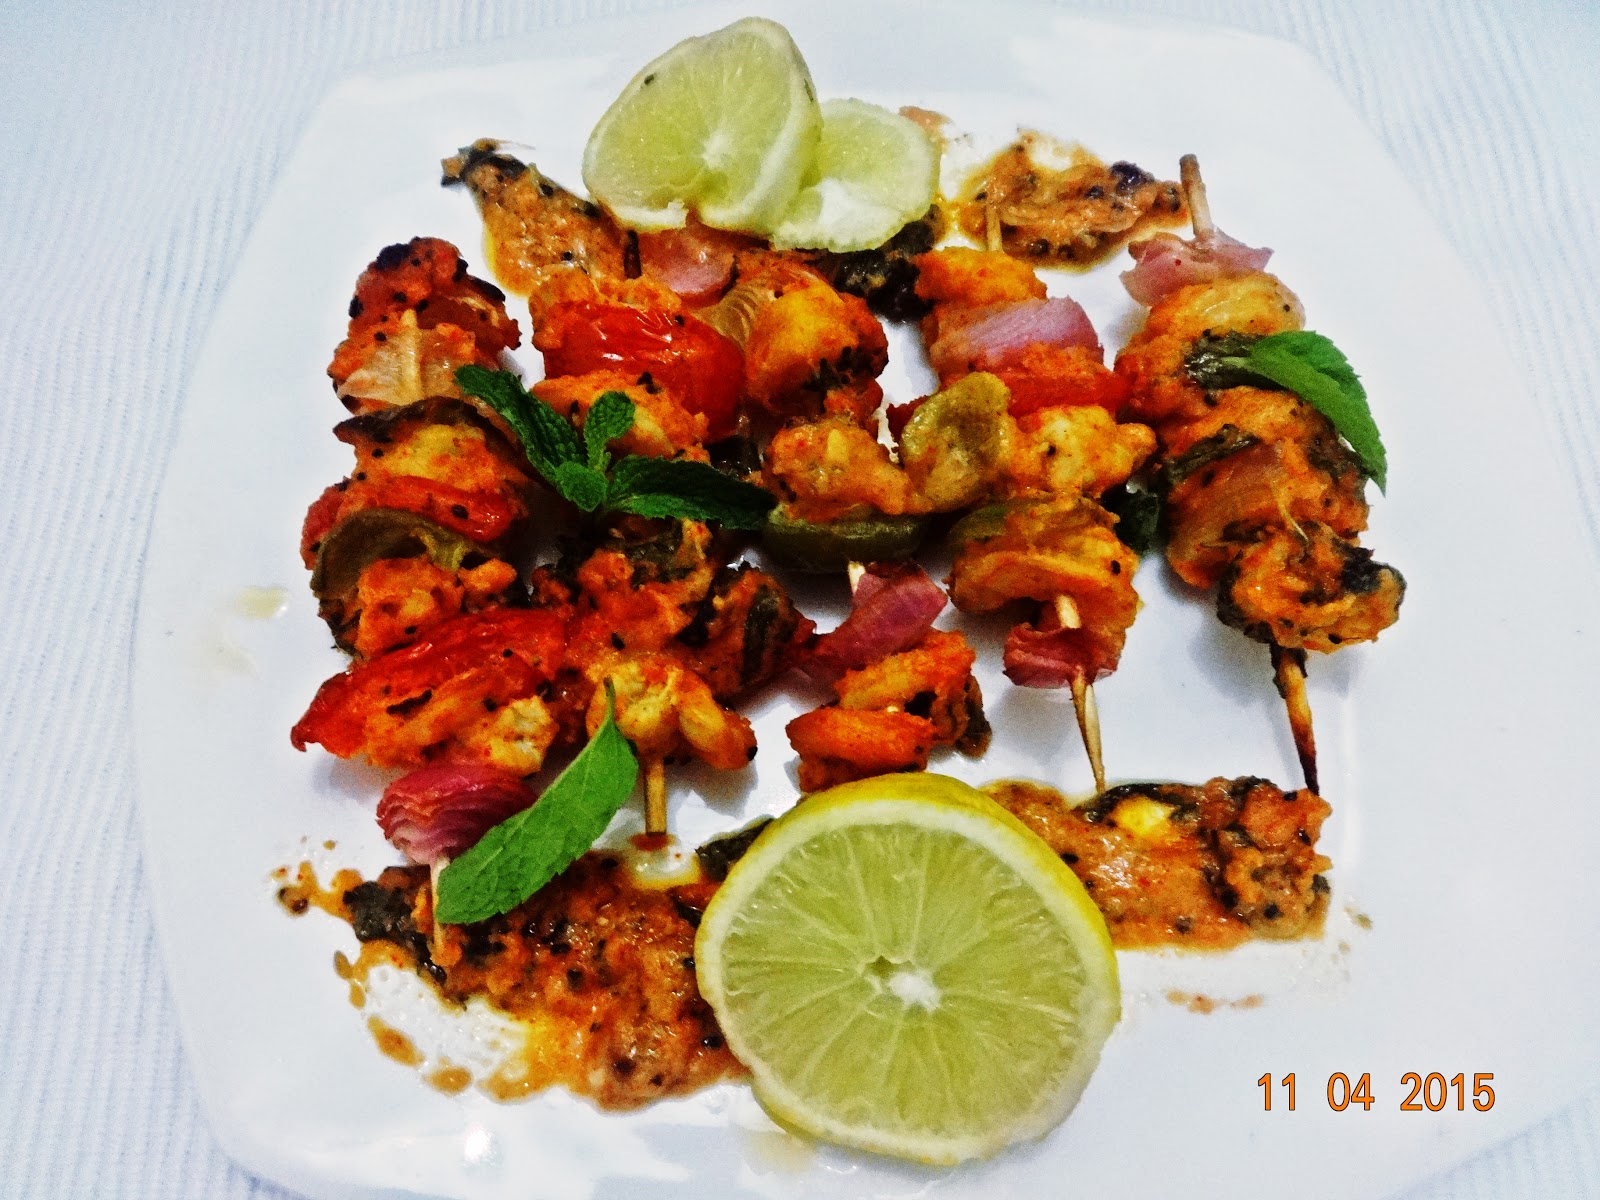 Lemon mint grilled prawns